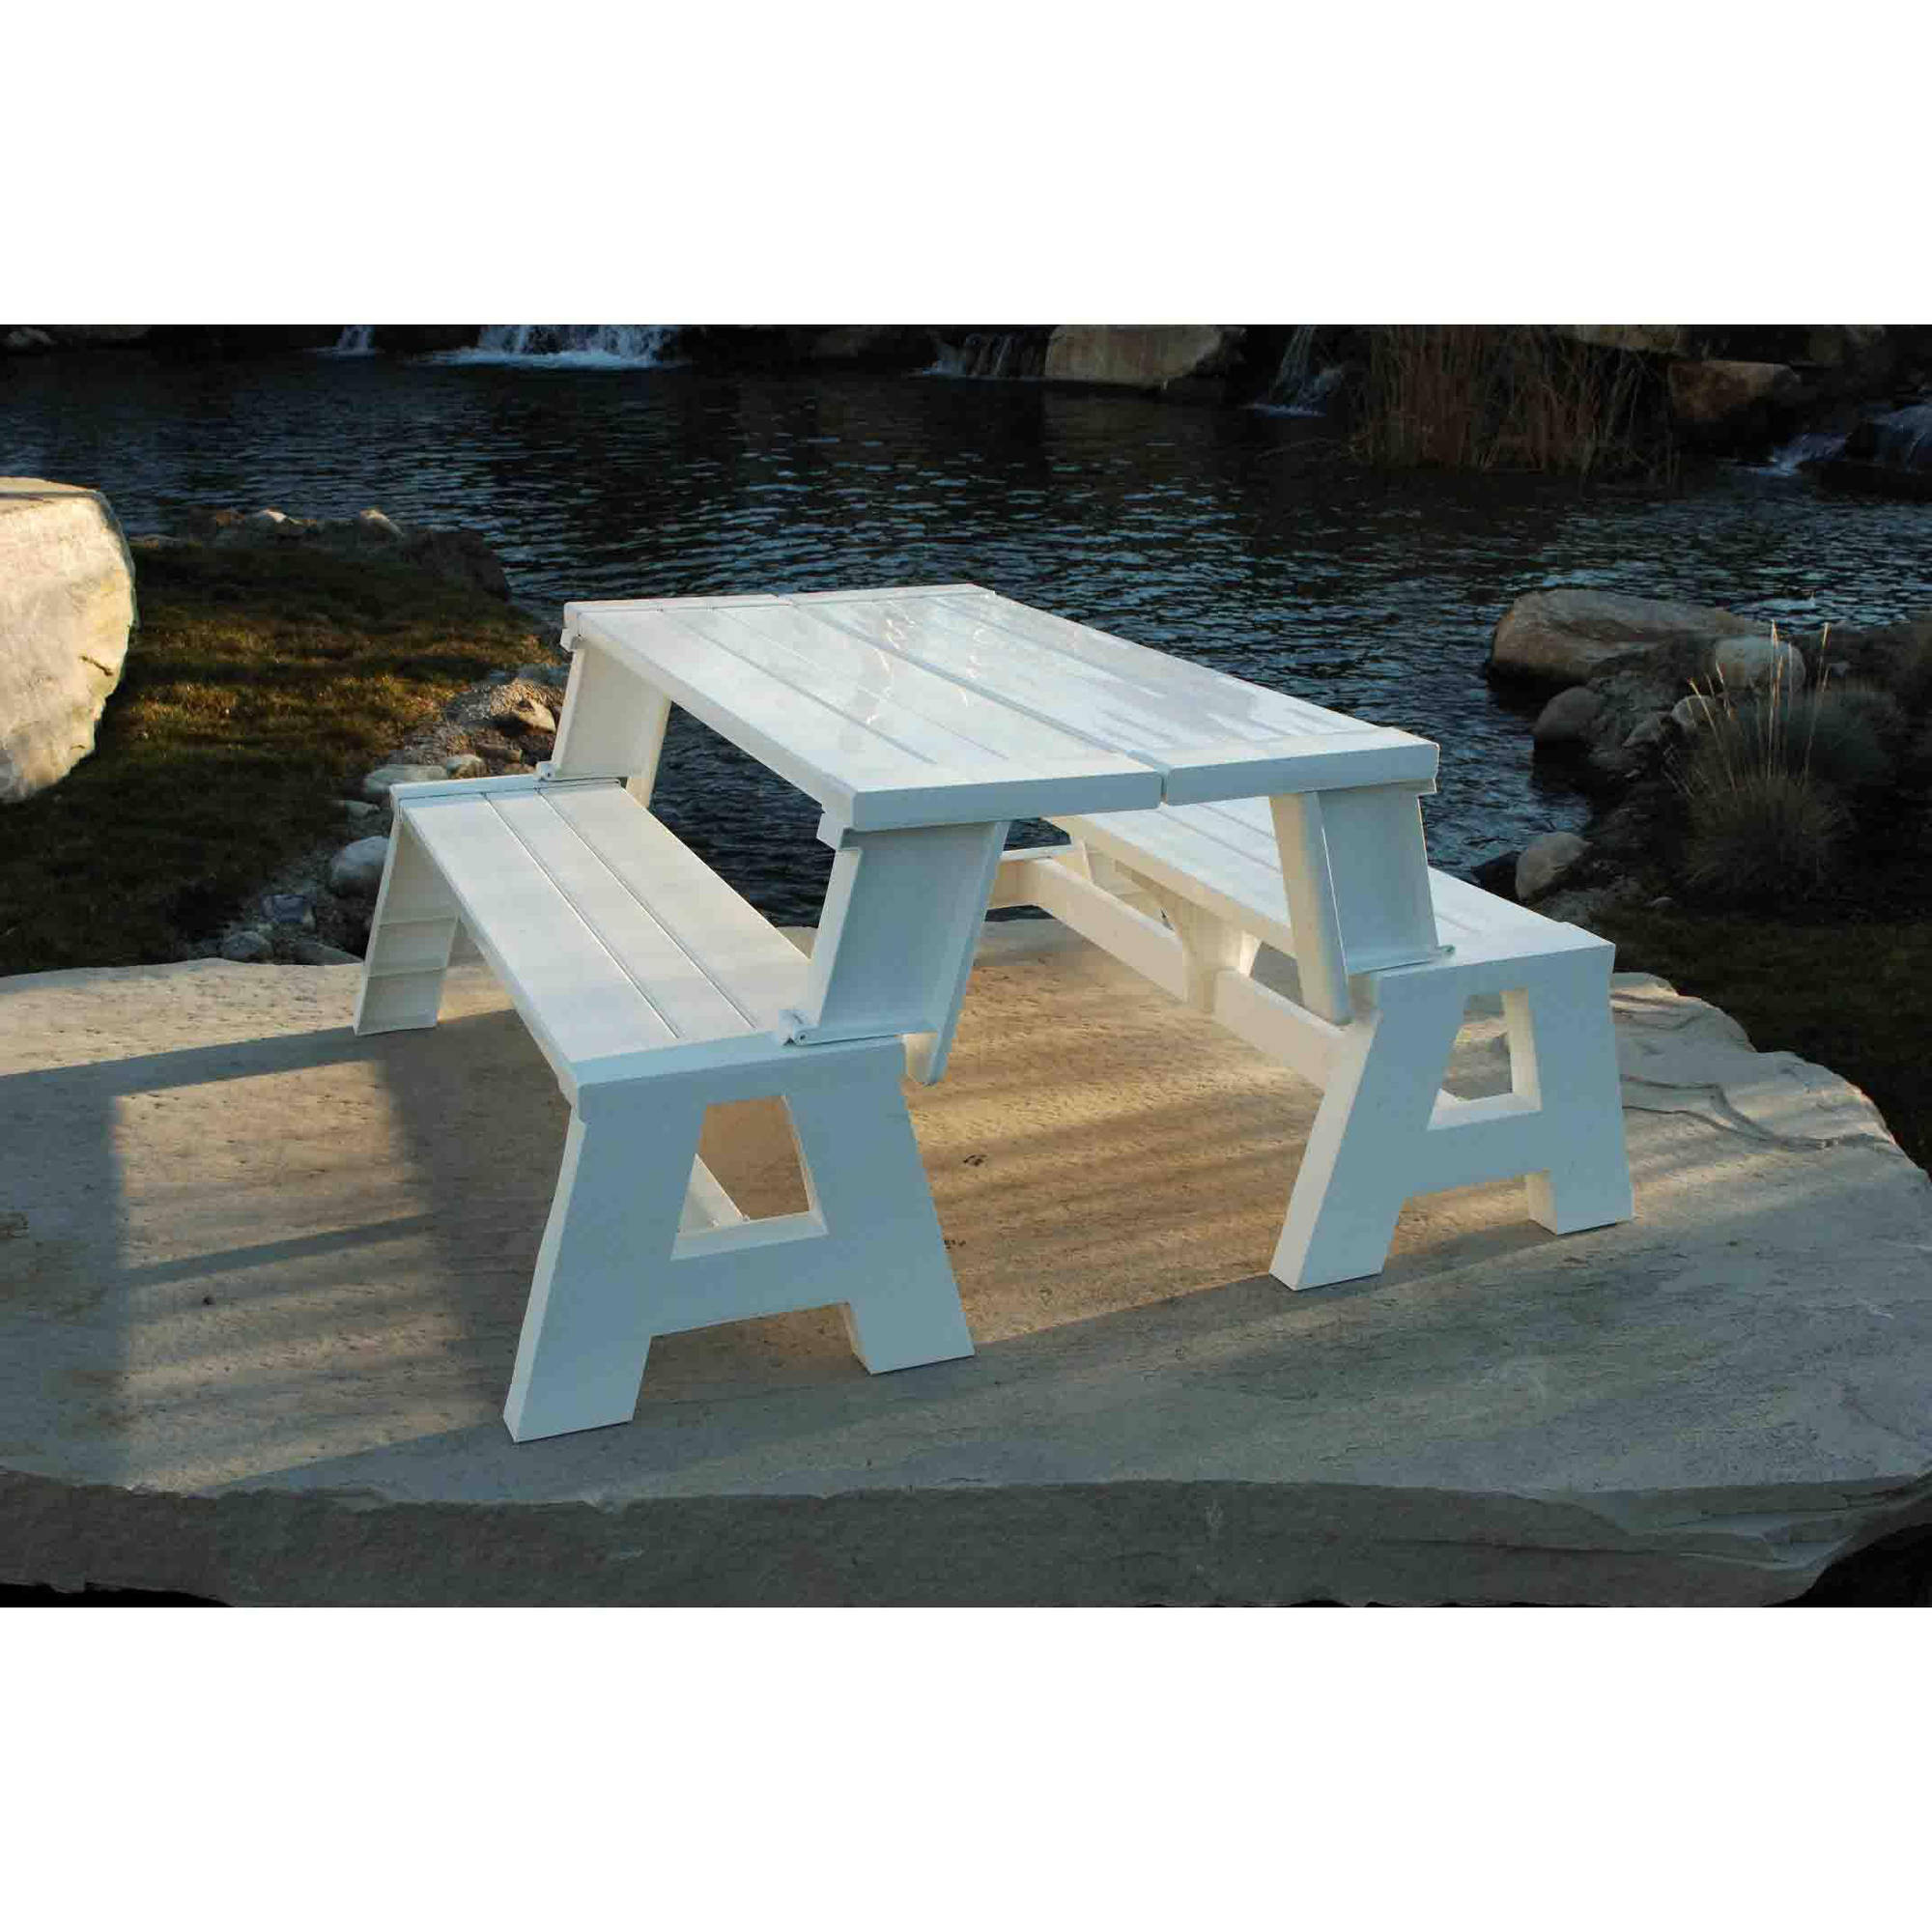 table co uk bench leg garden beer picnic furniture westwood wood vintage set dp outdoor wooden folding party steel amazon pub outdoors trestle